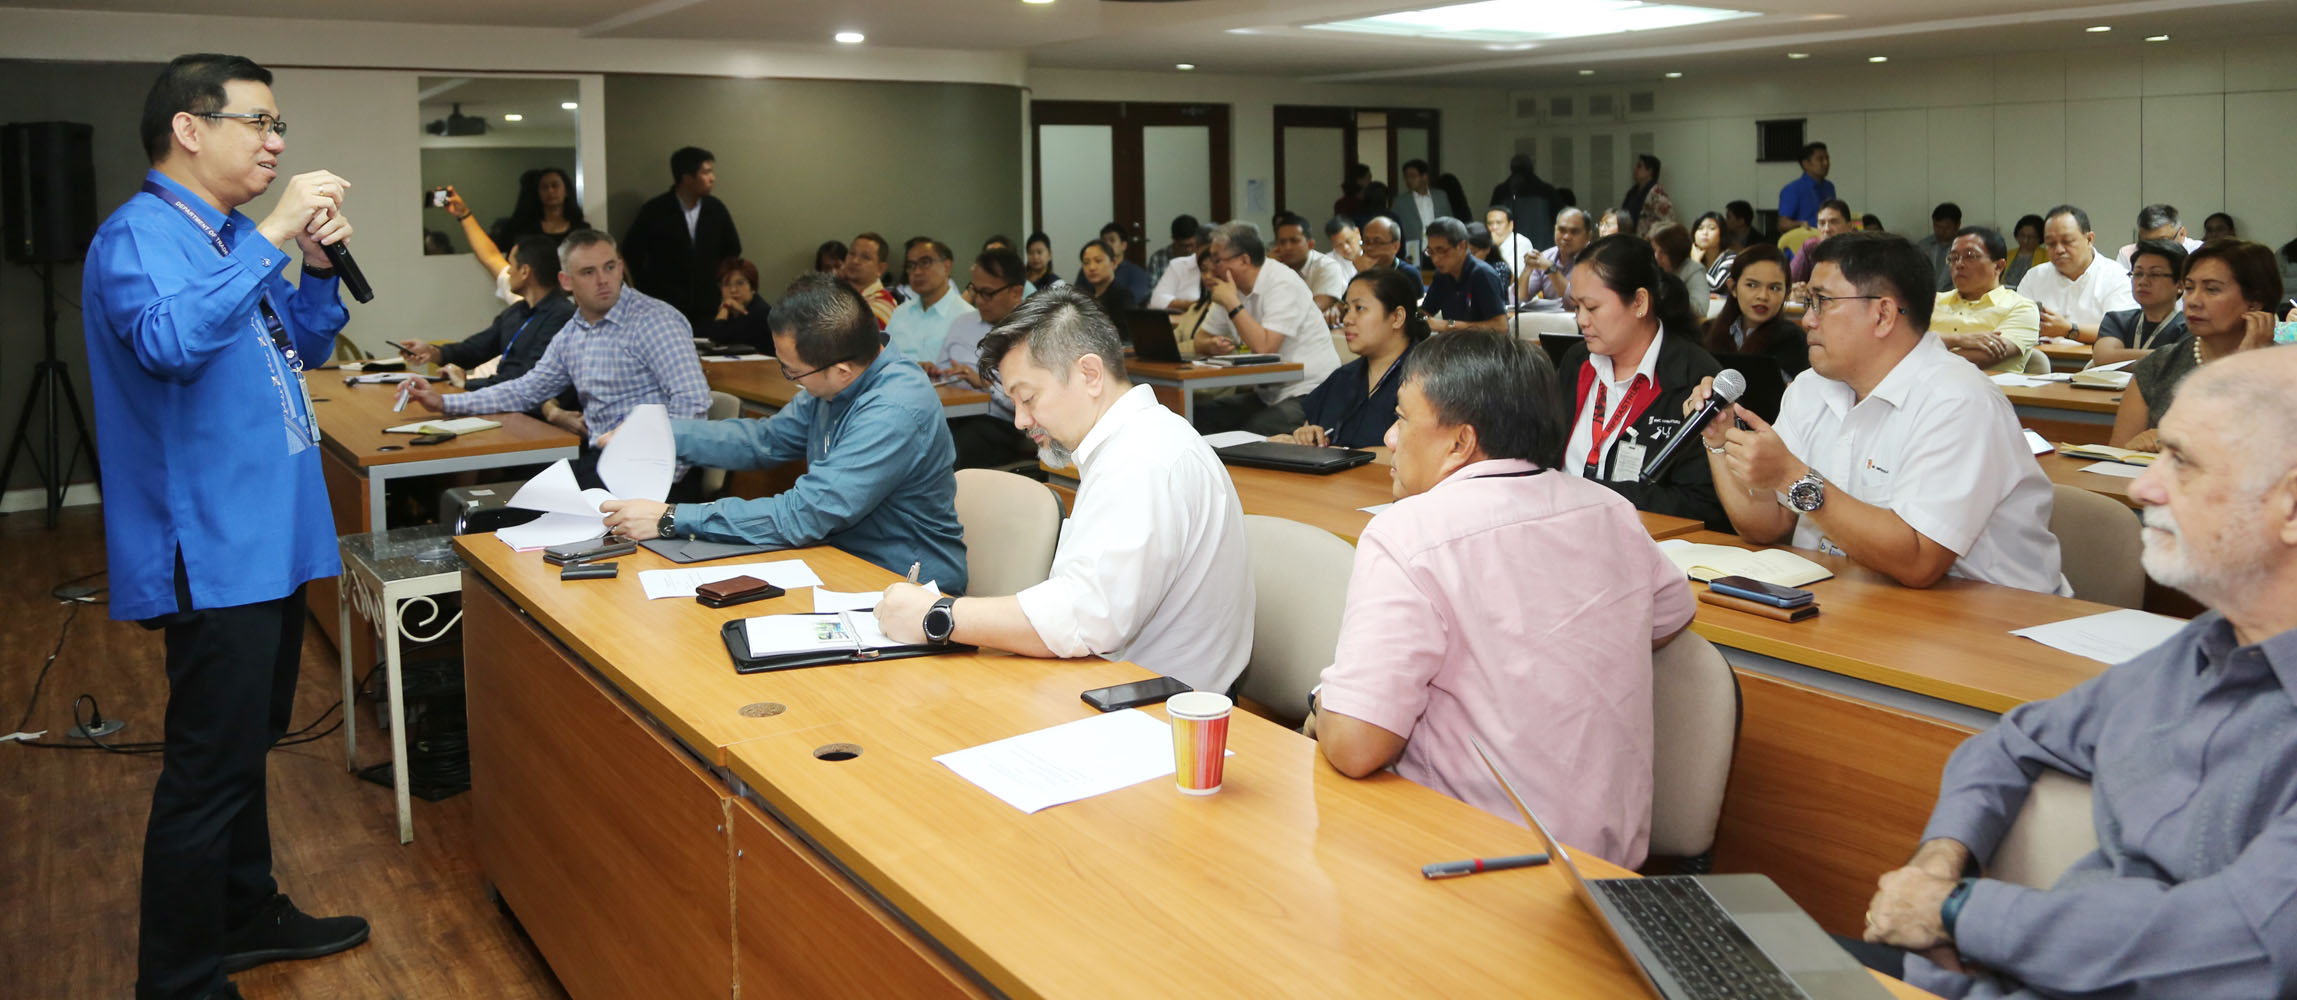 Industry stakeholders discuss business continuity  in affected areas of Taal  eruption